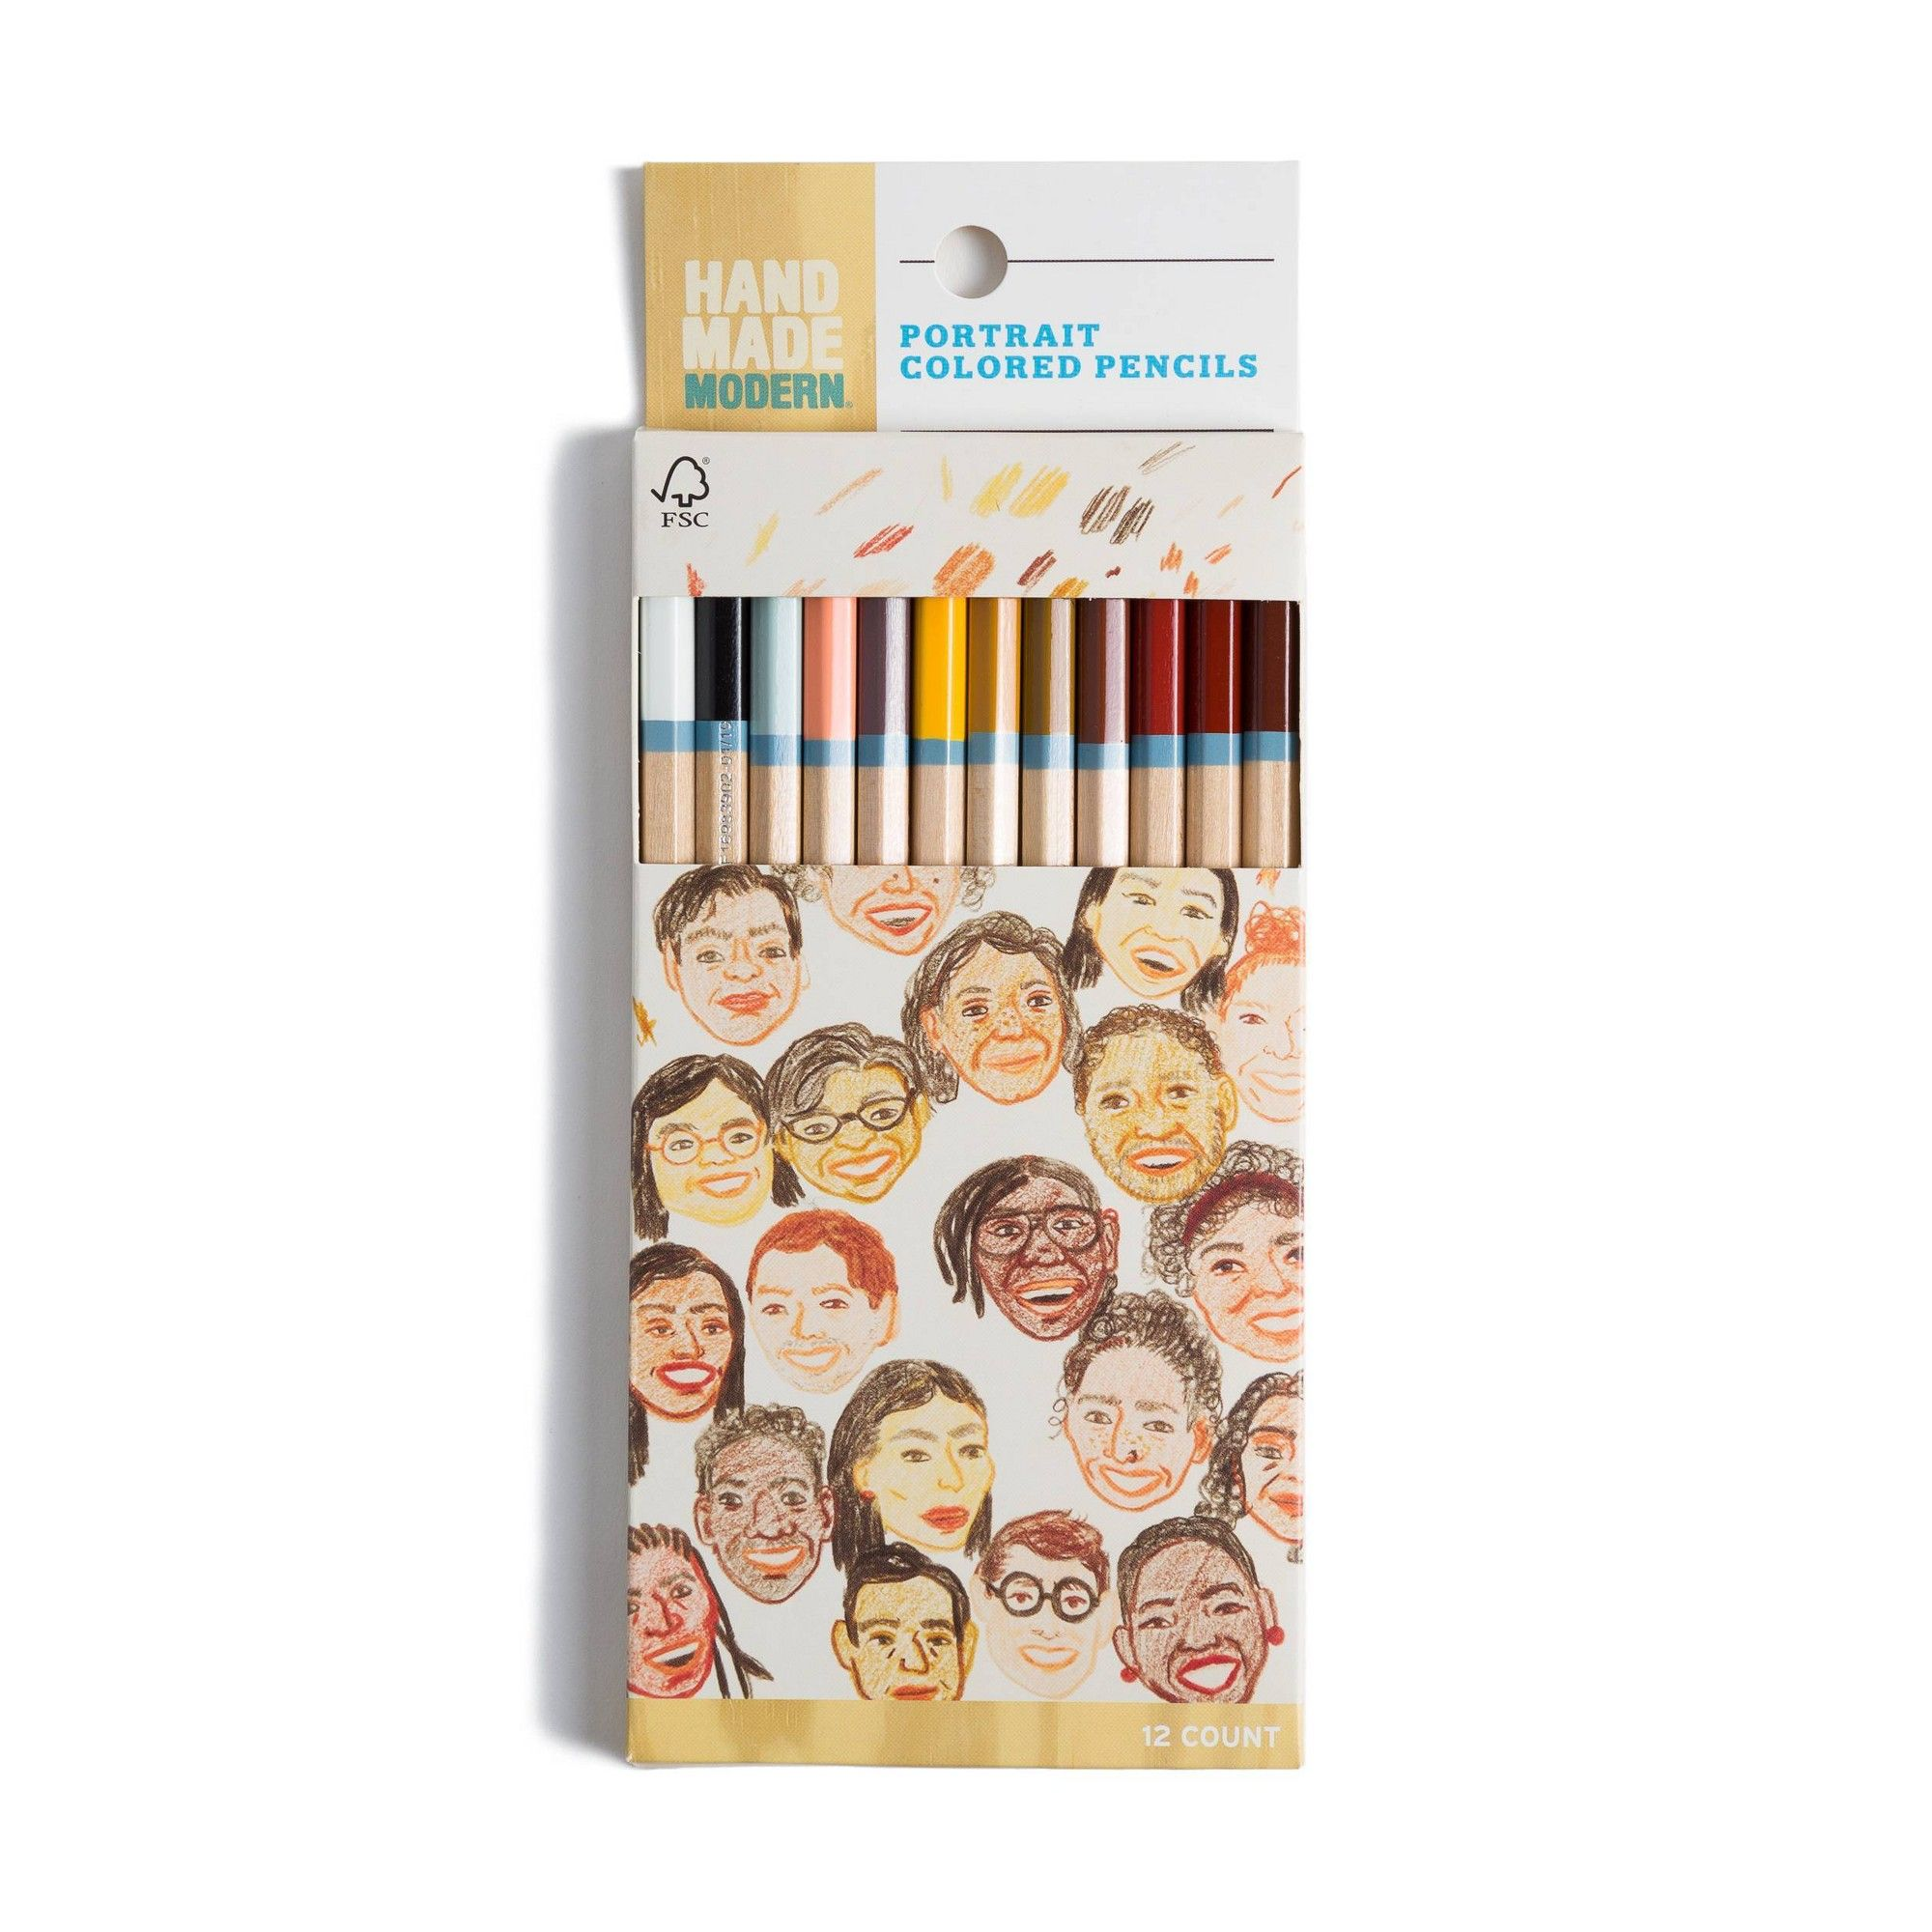 12ct Skin Tone Colored Pencils Hand Made Modern Skin Tone